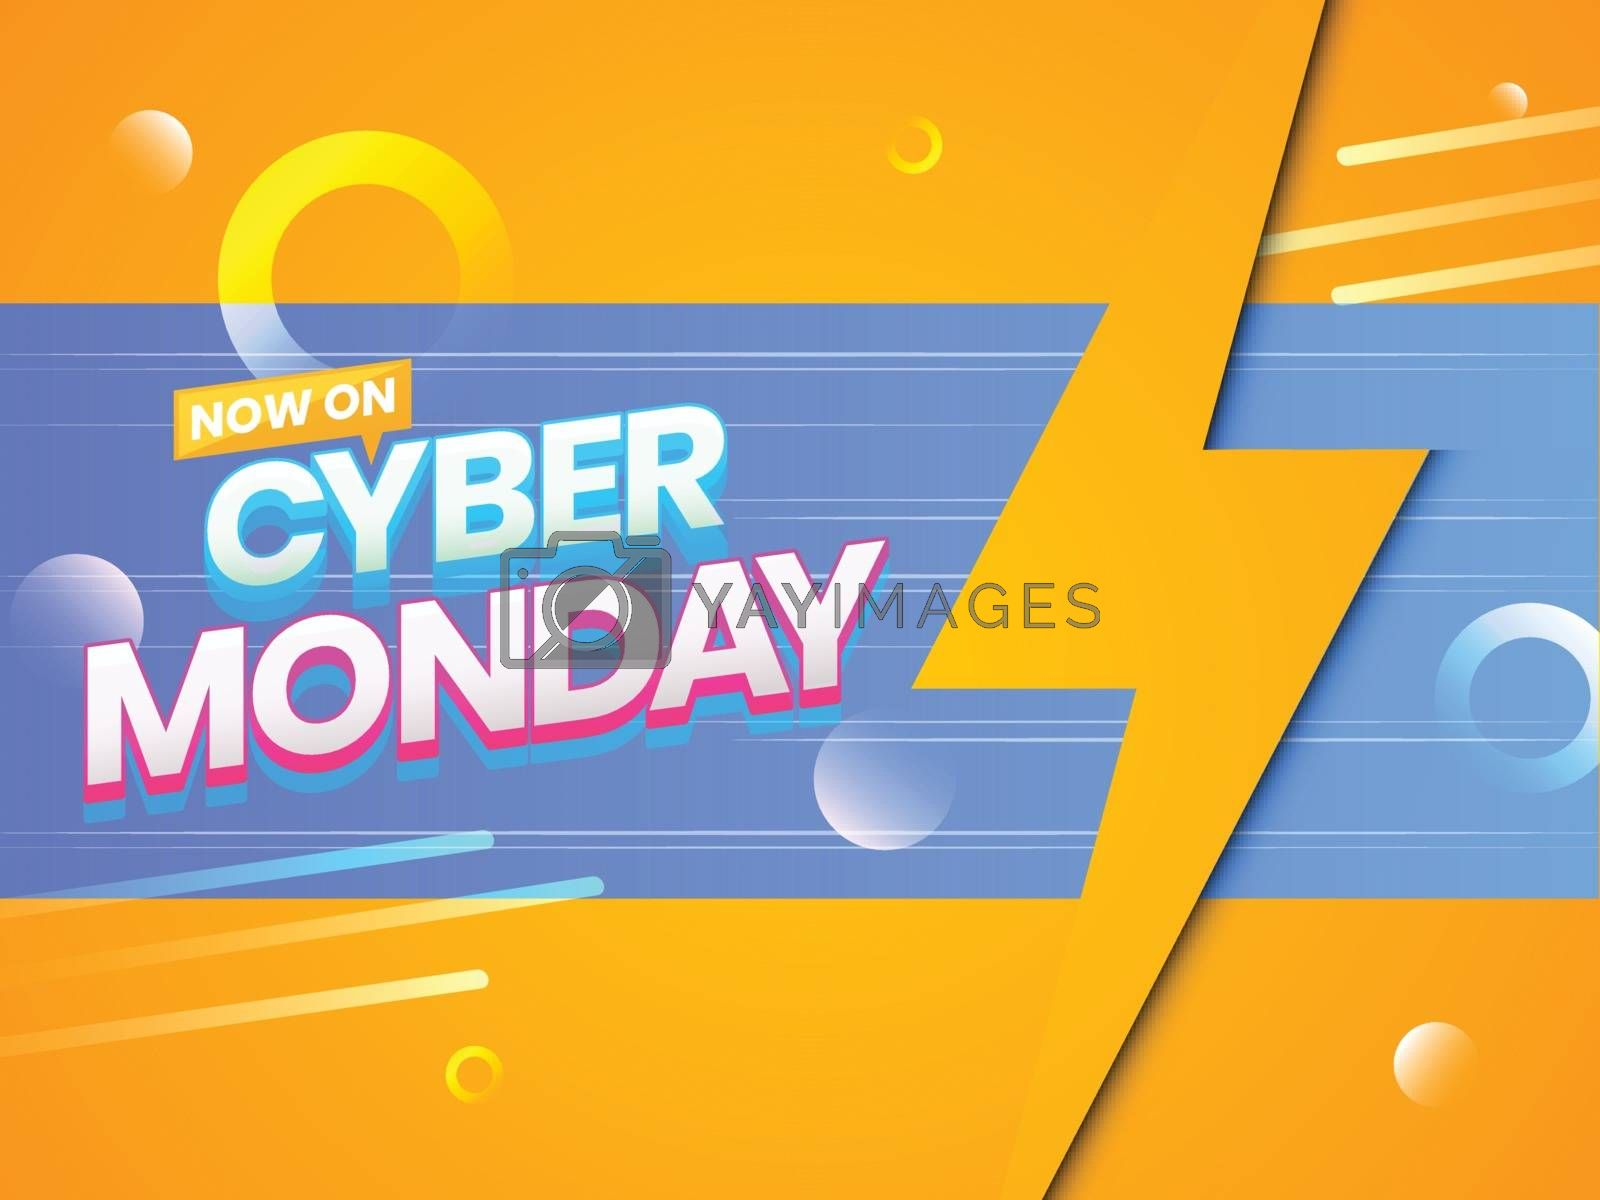 Creative poster or template design with text Cyber Monday and abstract elements on shiny orange background.